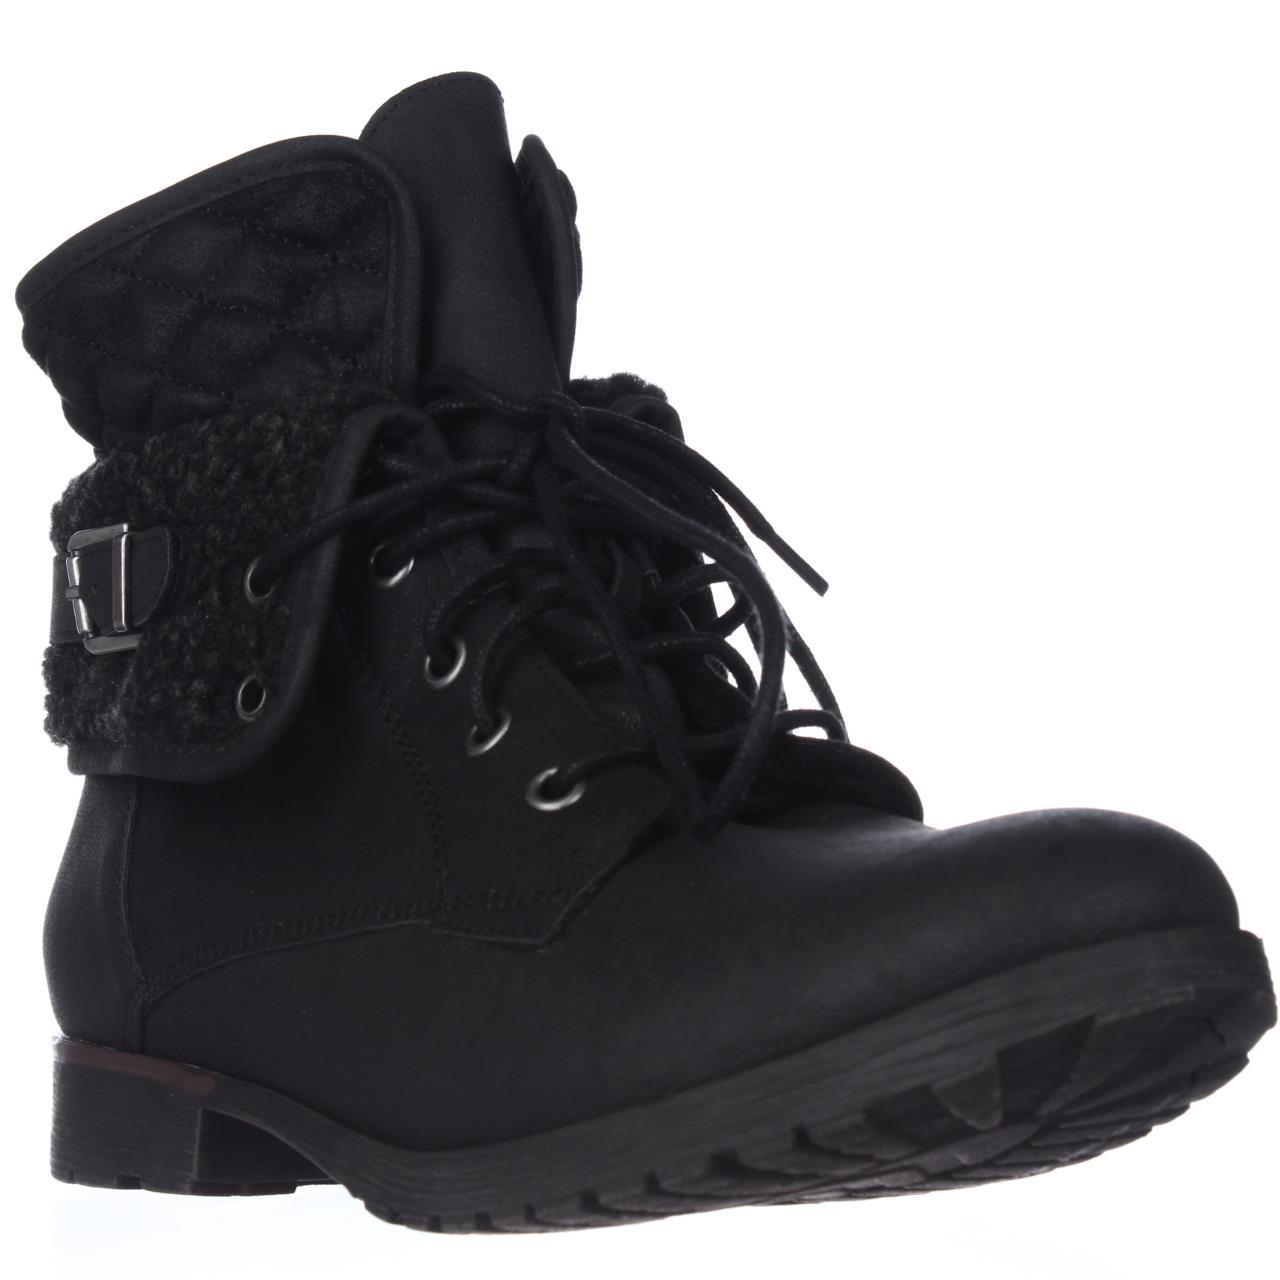 Womens Rock & Candy Spraypaint Foldover Ankle Boots - Black